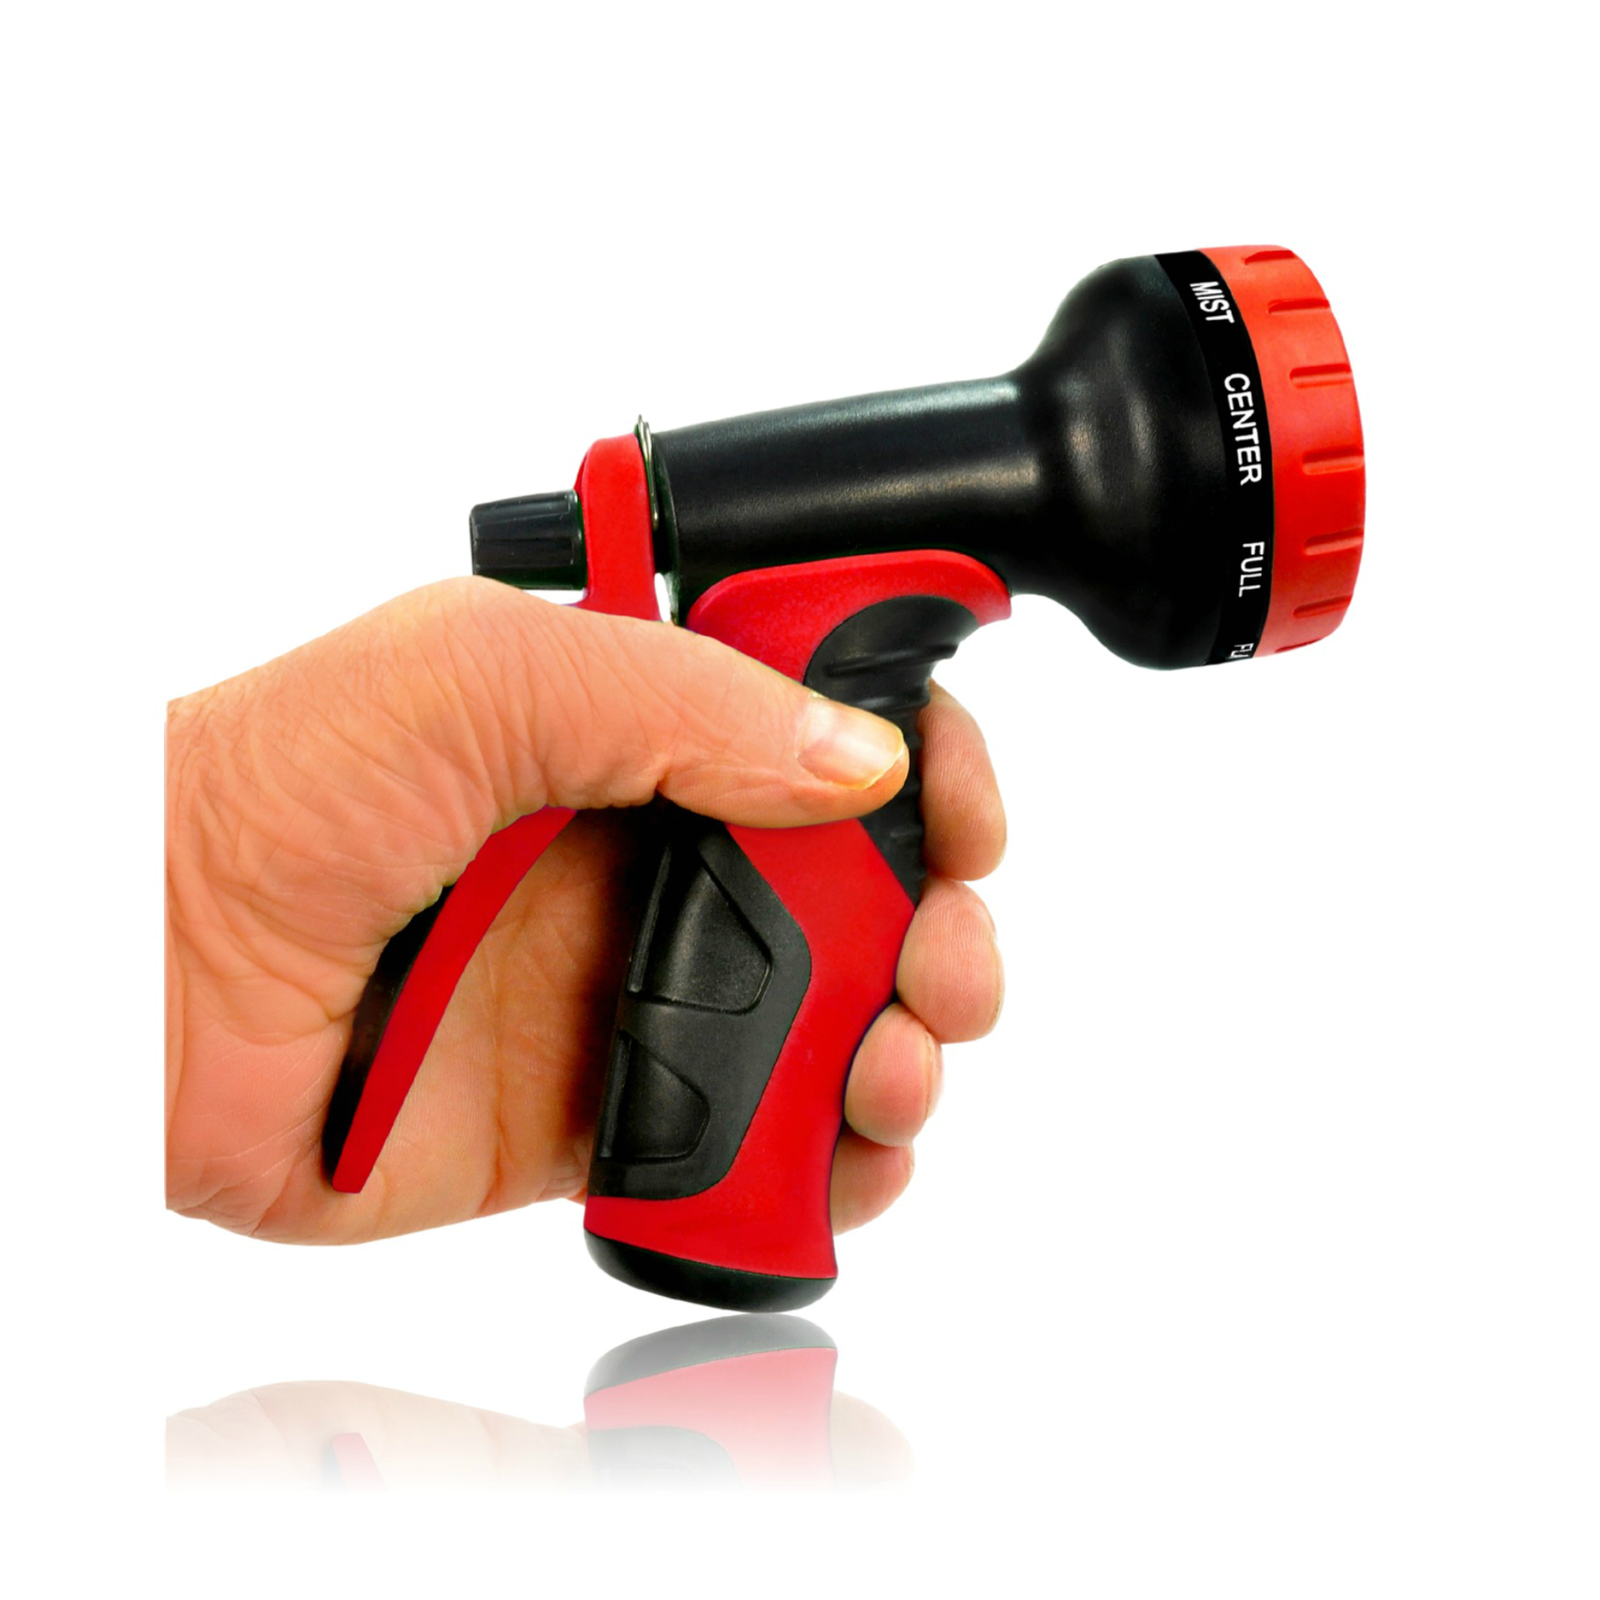 Top Rated Garden Hose Nozzle With 9 Adjustable Spray Settings Red Gardening Supplies